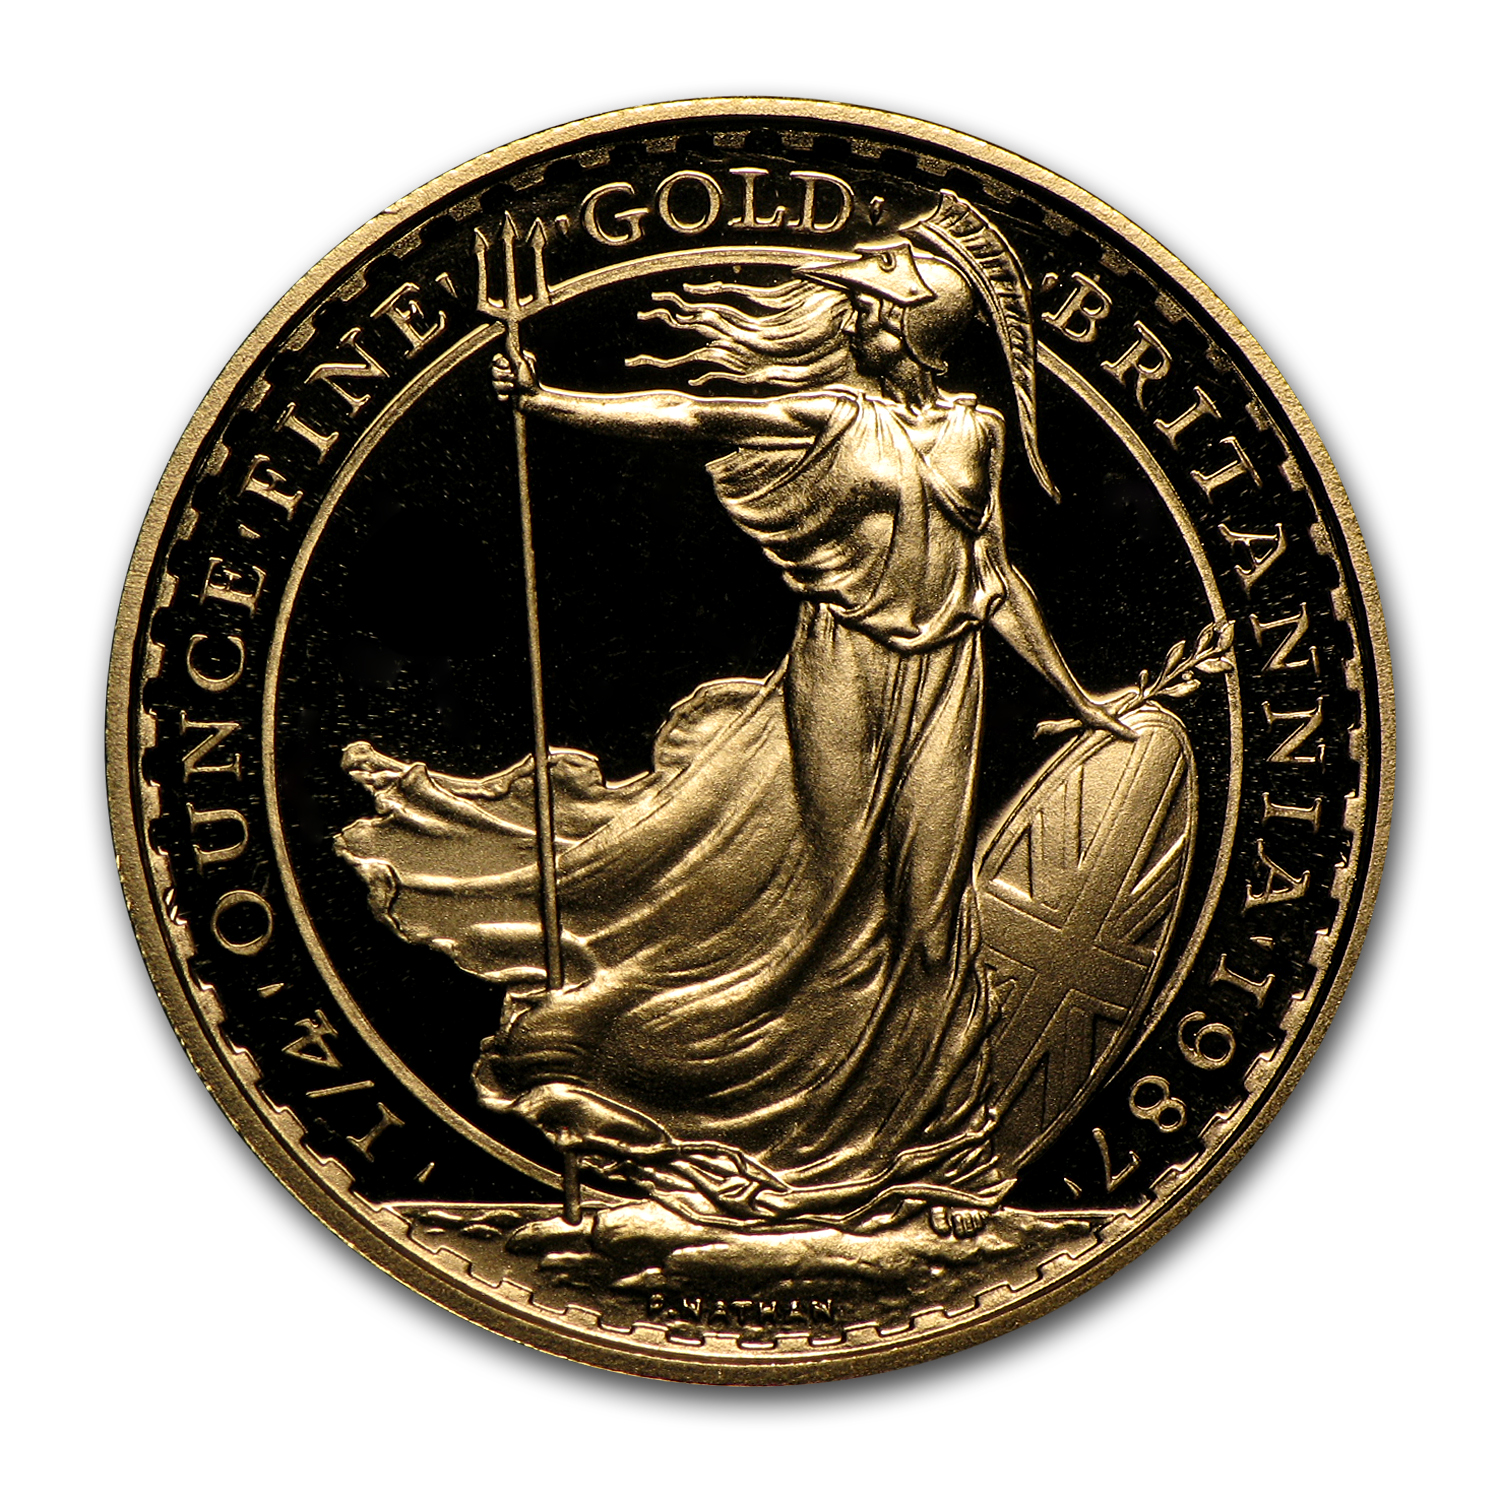 1987 1/4 oz Proof Gold Britannia